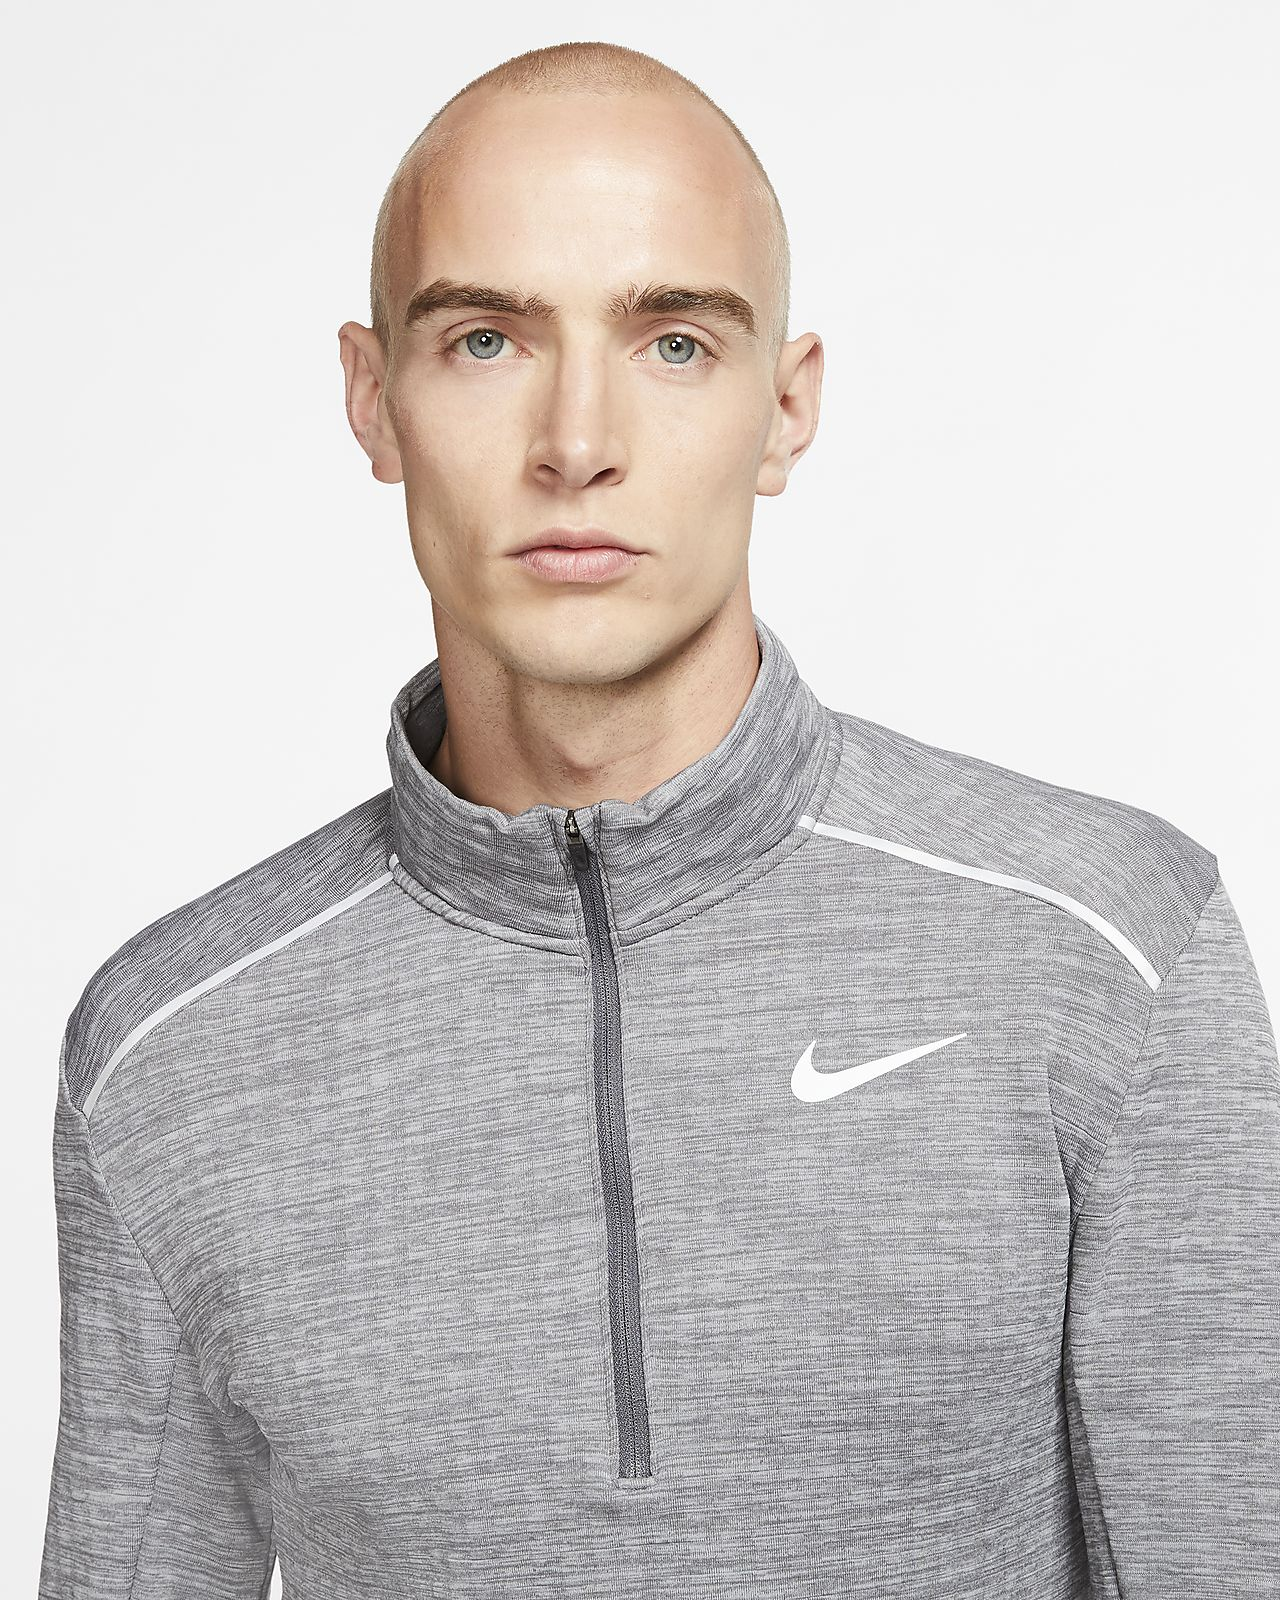 Nike Therma Sphere Element 3.0 Men's 12 Zip Running Top